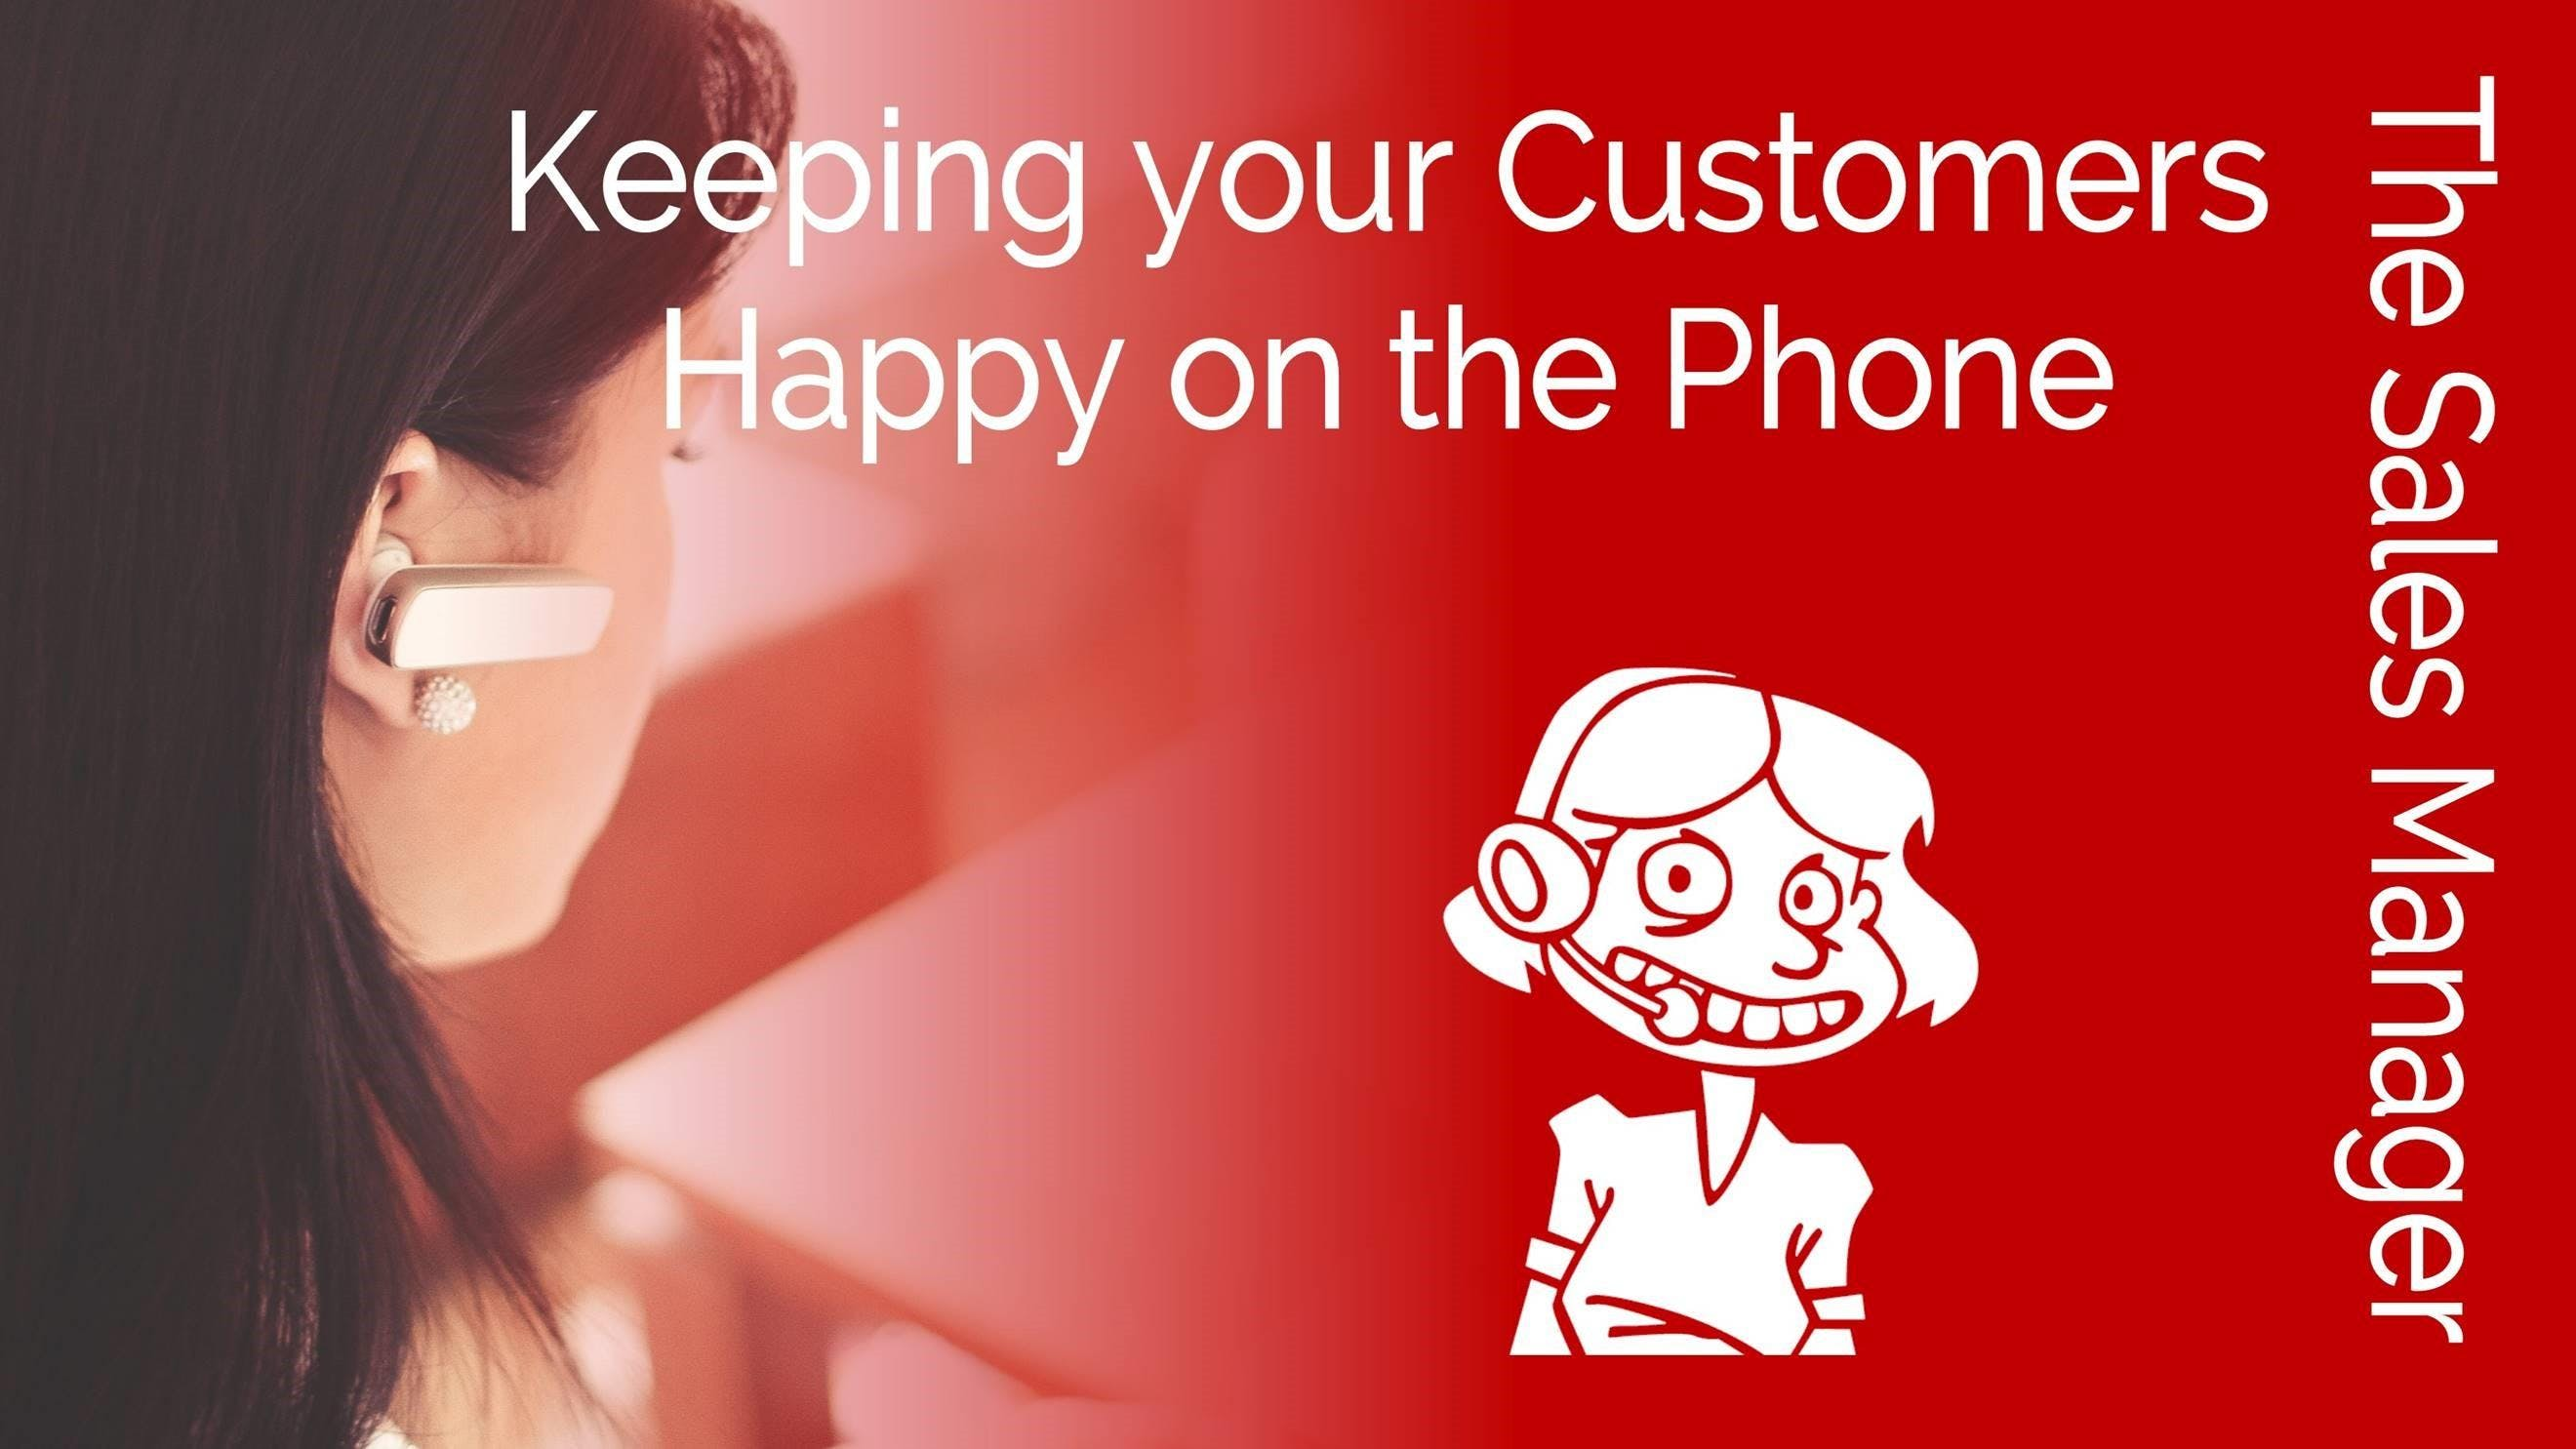 Keeping Your Customers Happy on the Phone